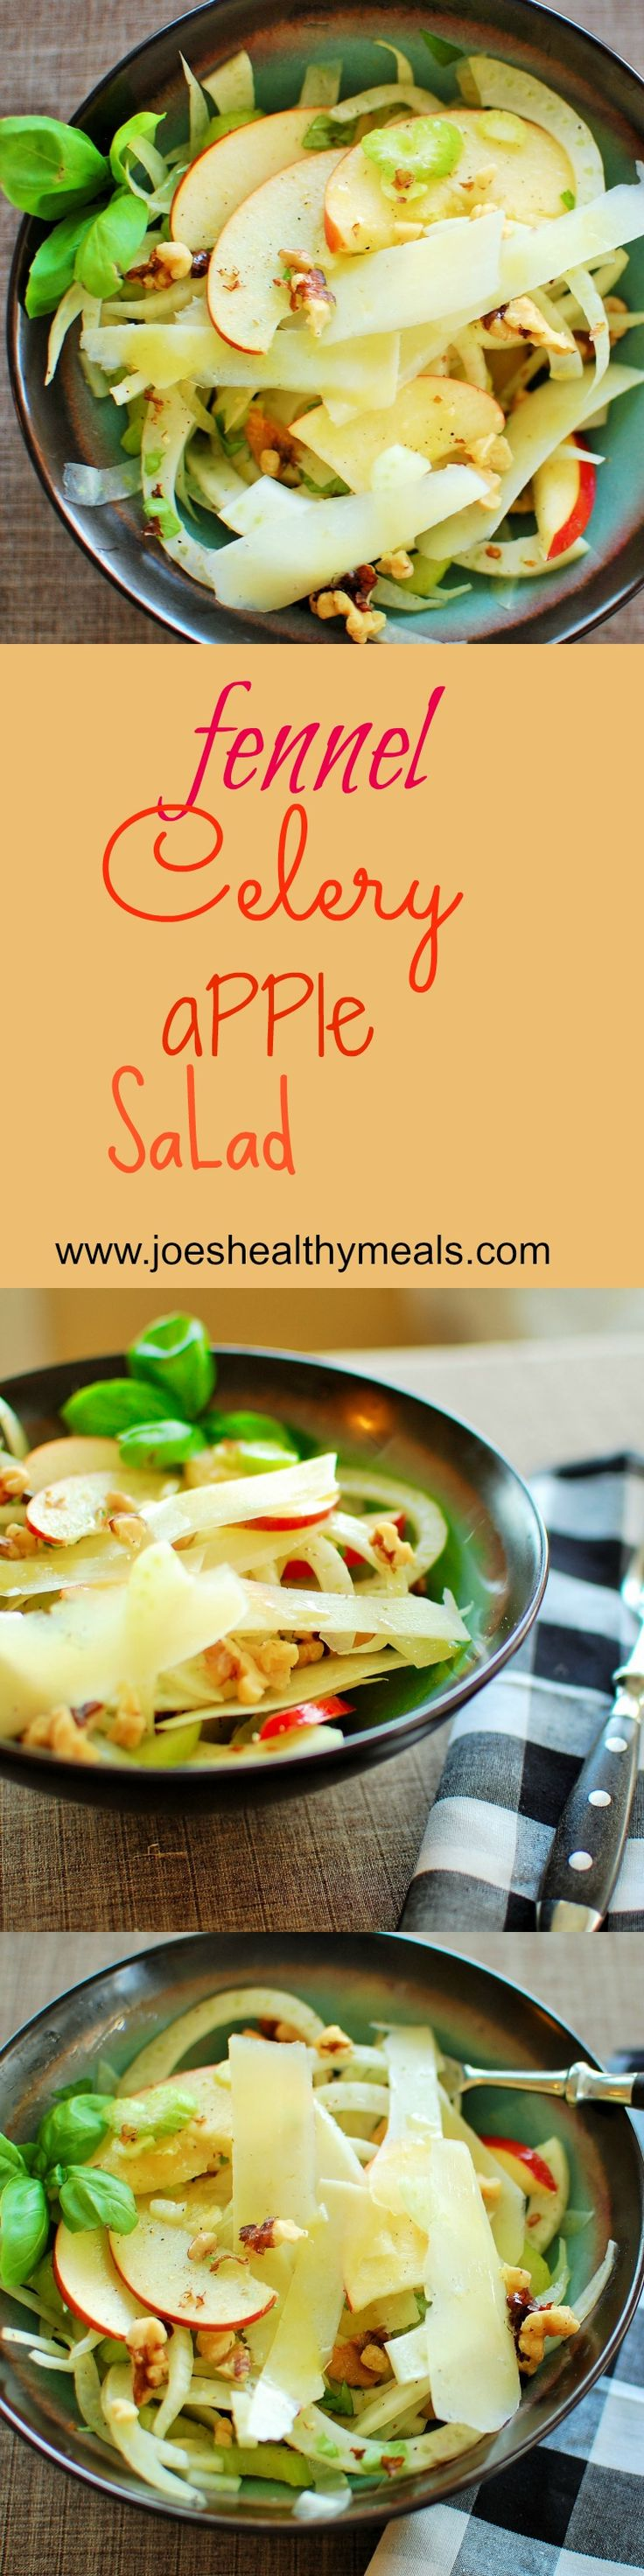 Fennel, celery and apple salad. http://www.joeshealthymeals.com/2015/01/02/fennel-celery-apple-salad/